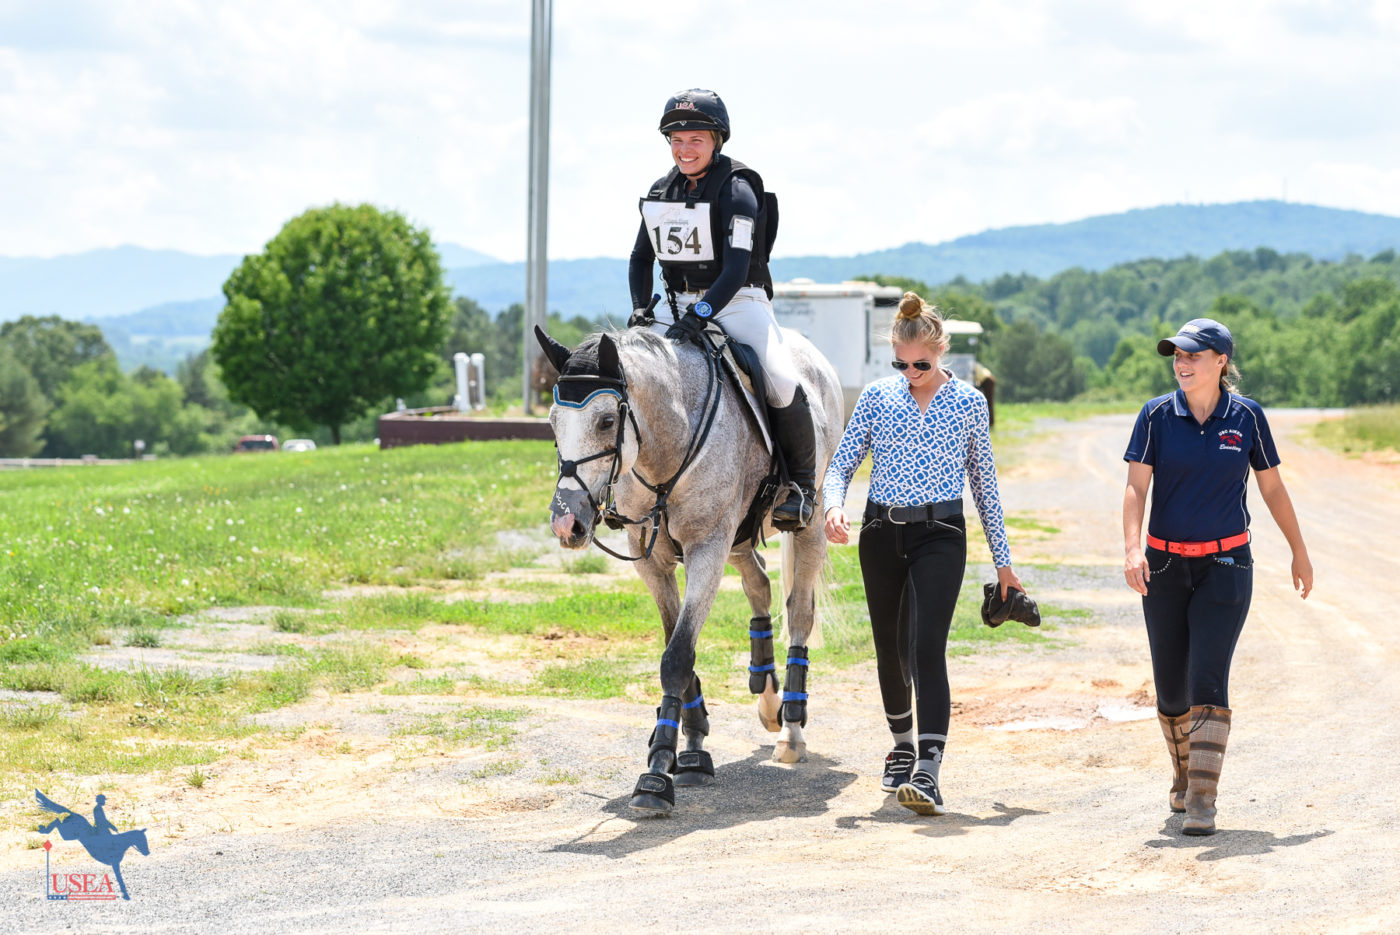 Members of the USC Aiken Eventing Team heading back to the barn with Grace Fulton and Yippee Ki Yay after cross-country. USEA/Jessica Duffy Photo.